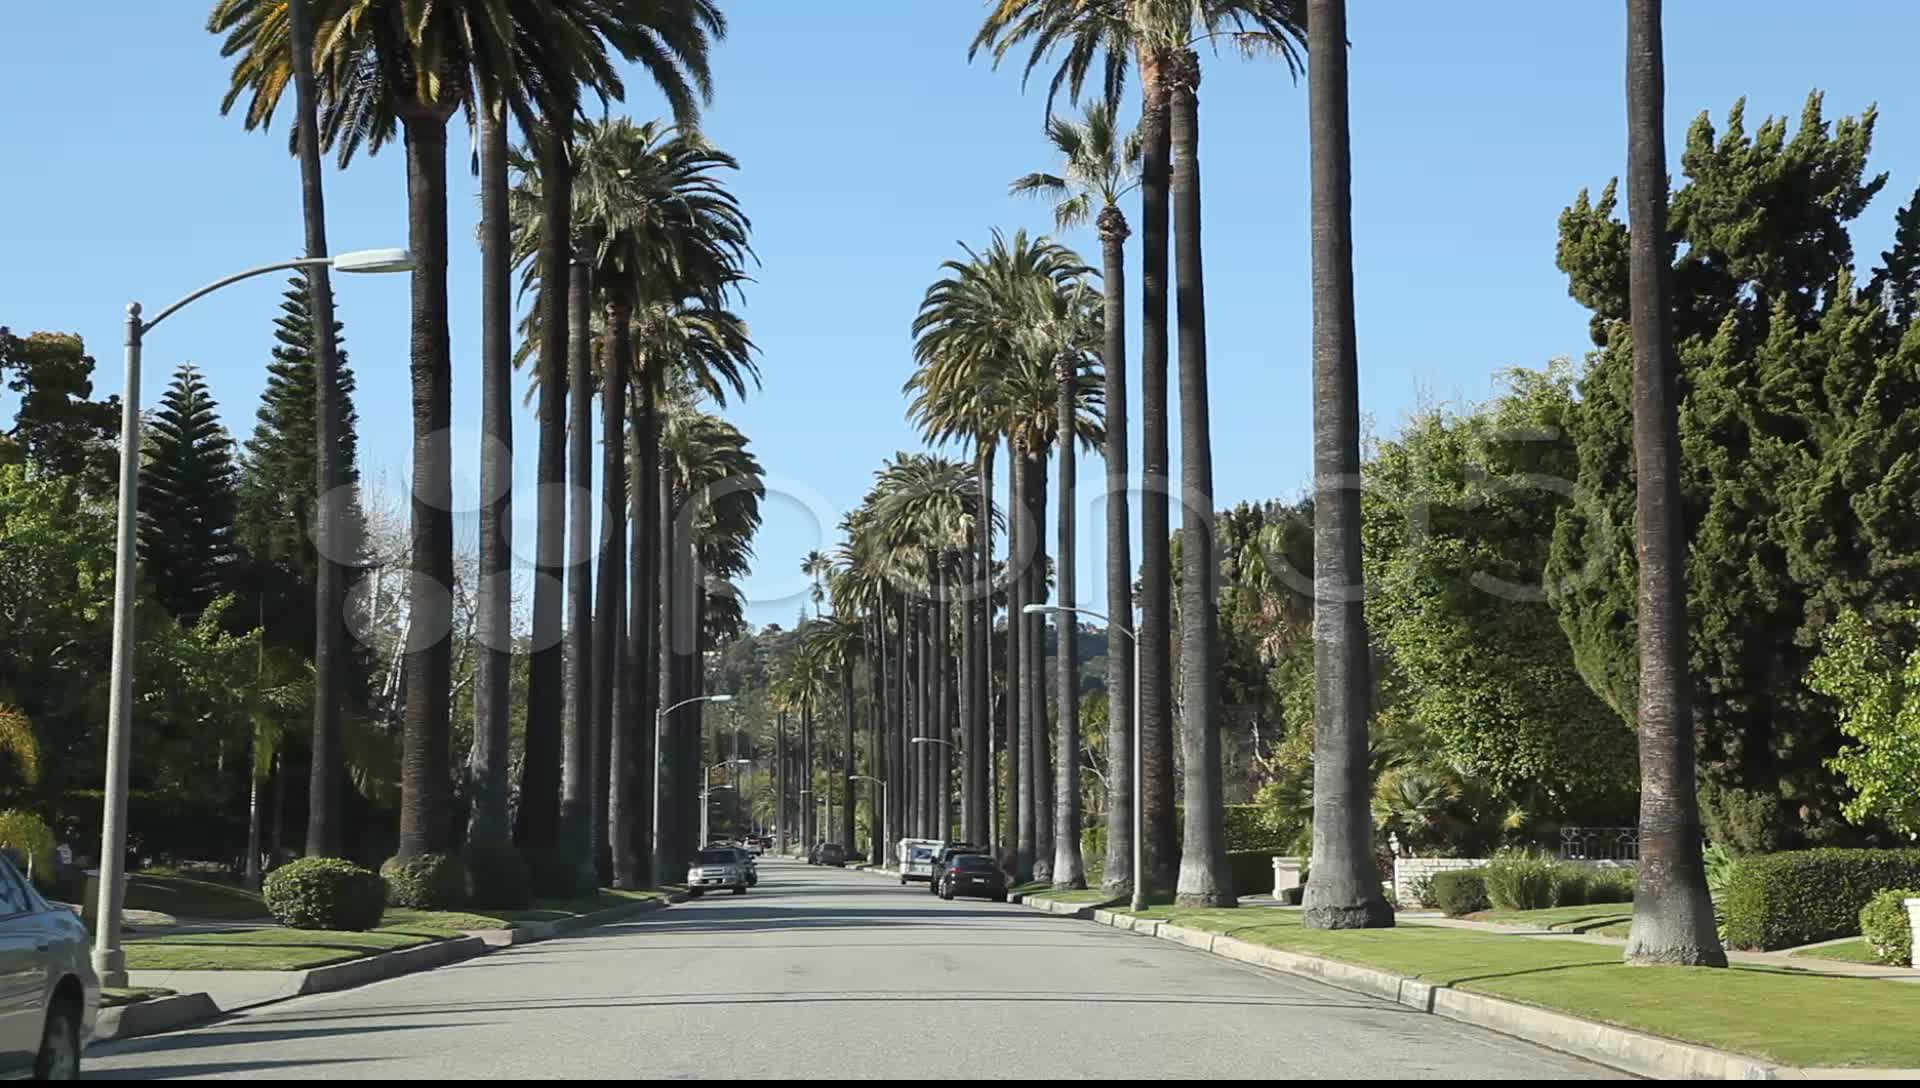 California Palm Trees Wallpaper - Los Angeles Palm Tree Road , HD Wallpaper & Backgrounds